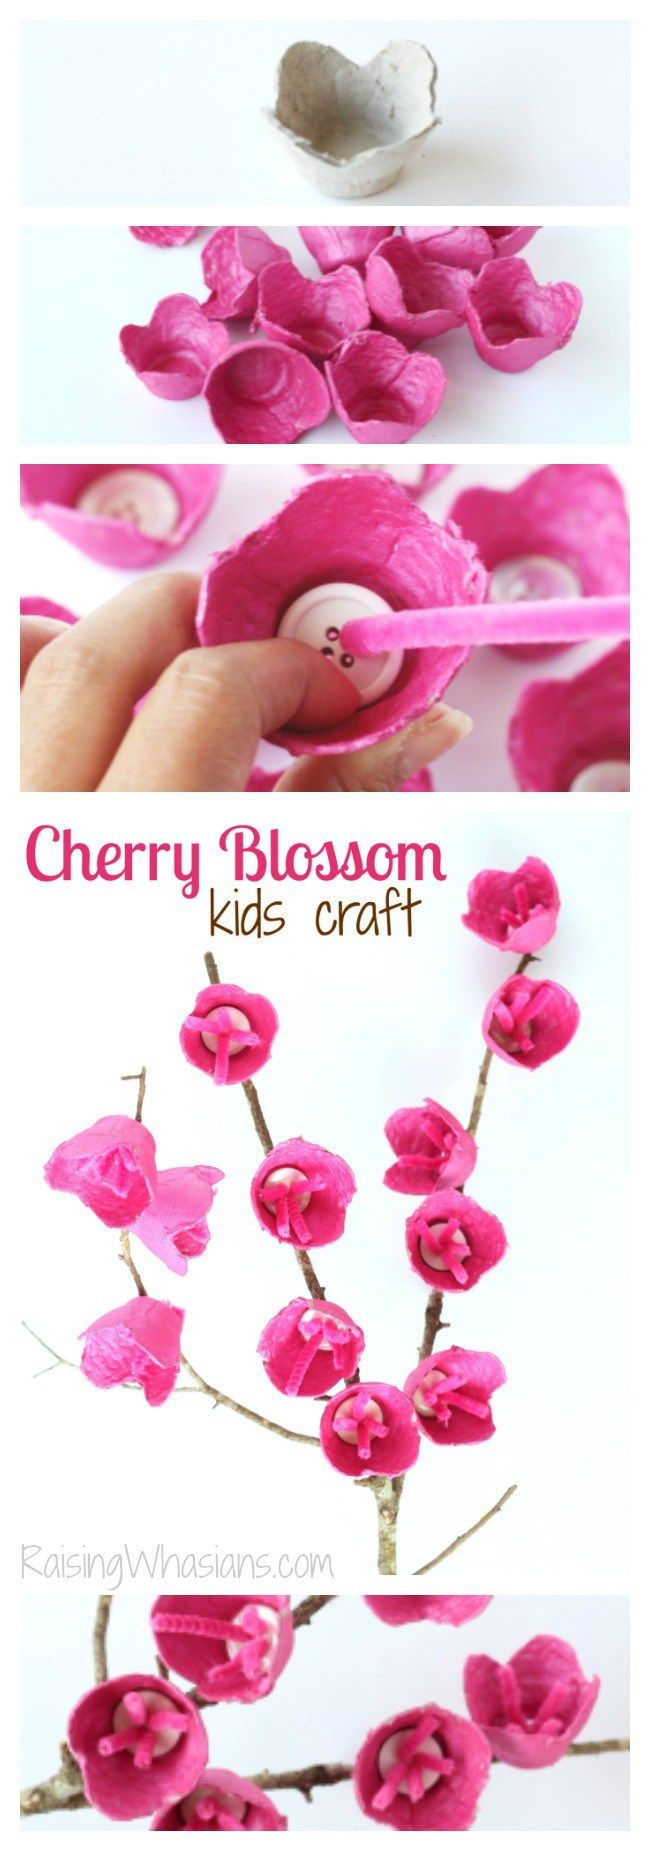 Cherry Blossom Craft for Kids | Upcycle old egg cartons into kids crafts! Easy spring craft idea